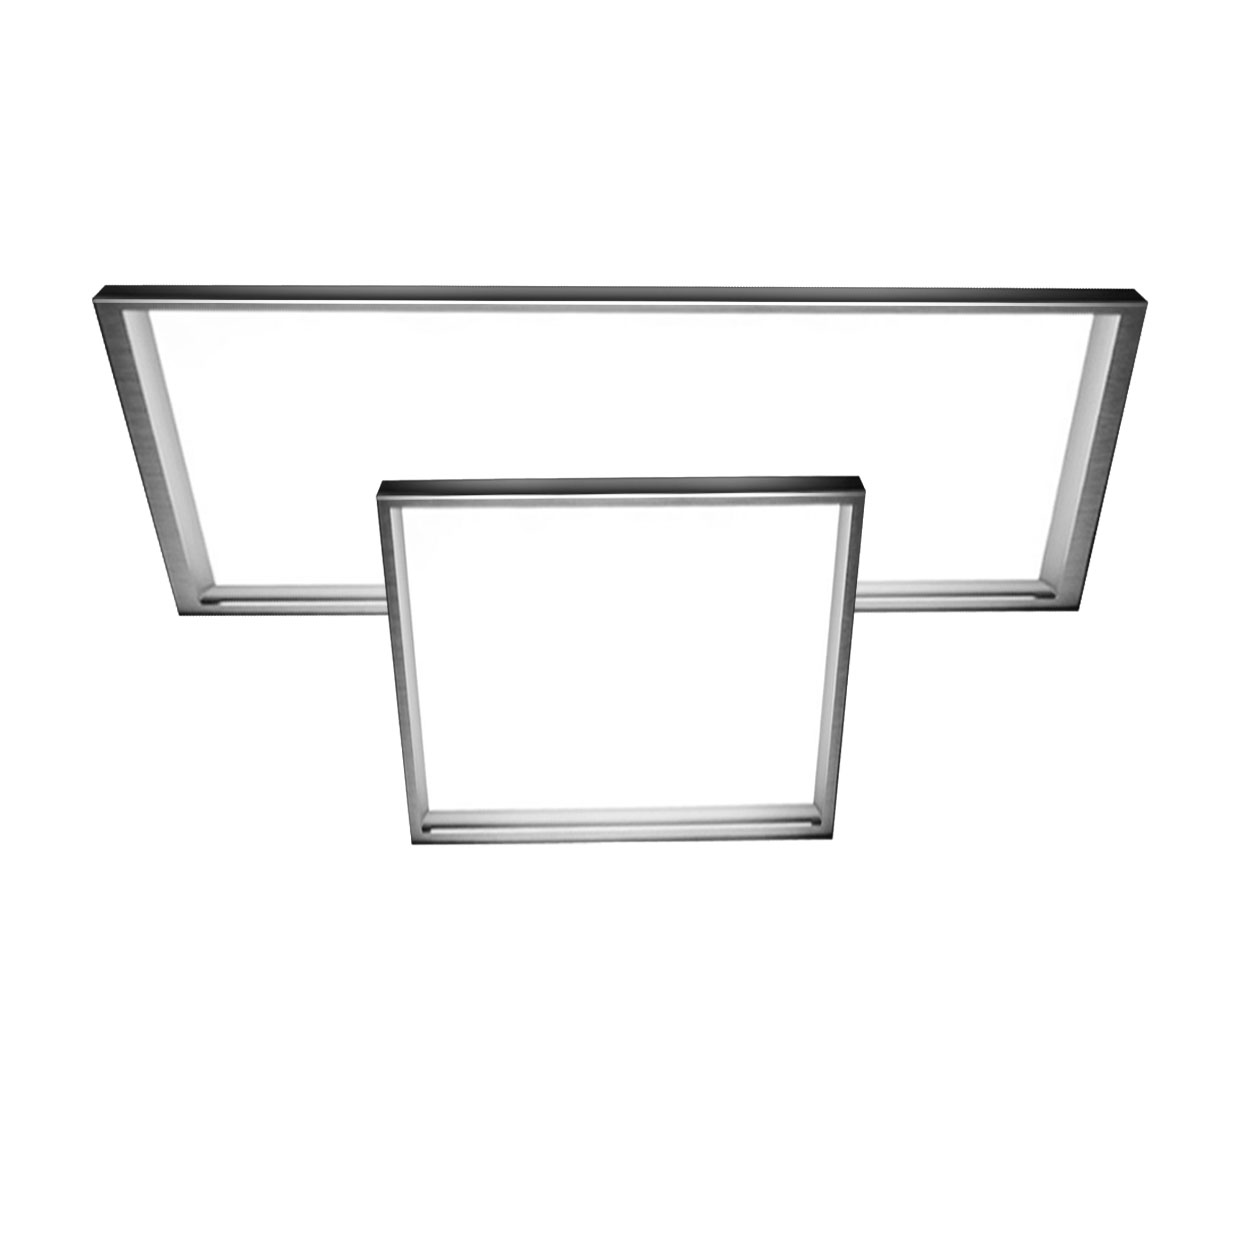 flat panel light 24w 1×2 led lamp 30x60cm cool white for classroom